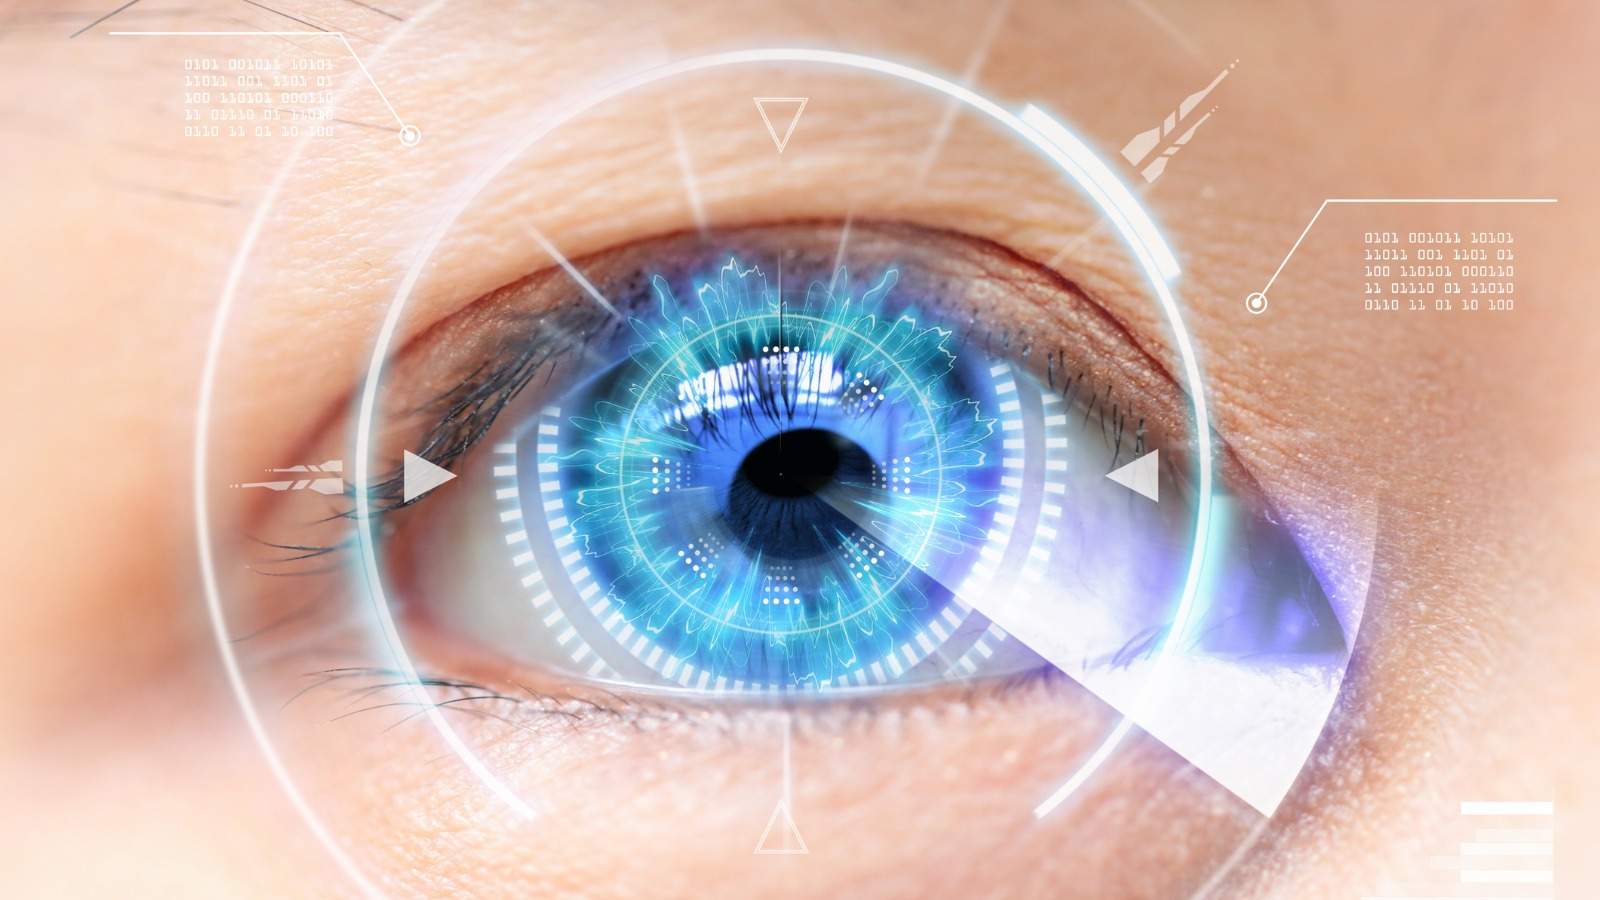 Latest and greatest in Orthokeratology research